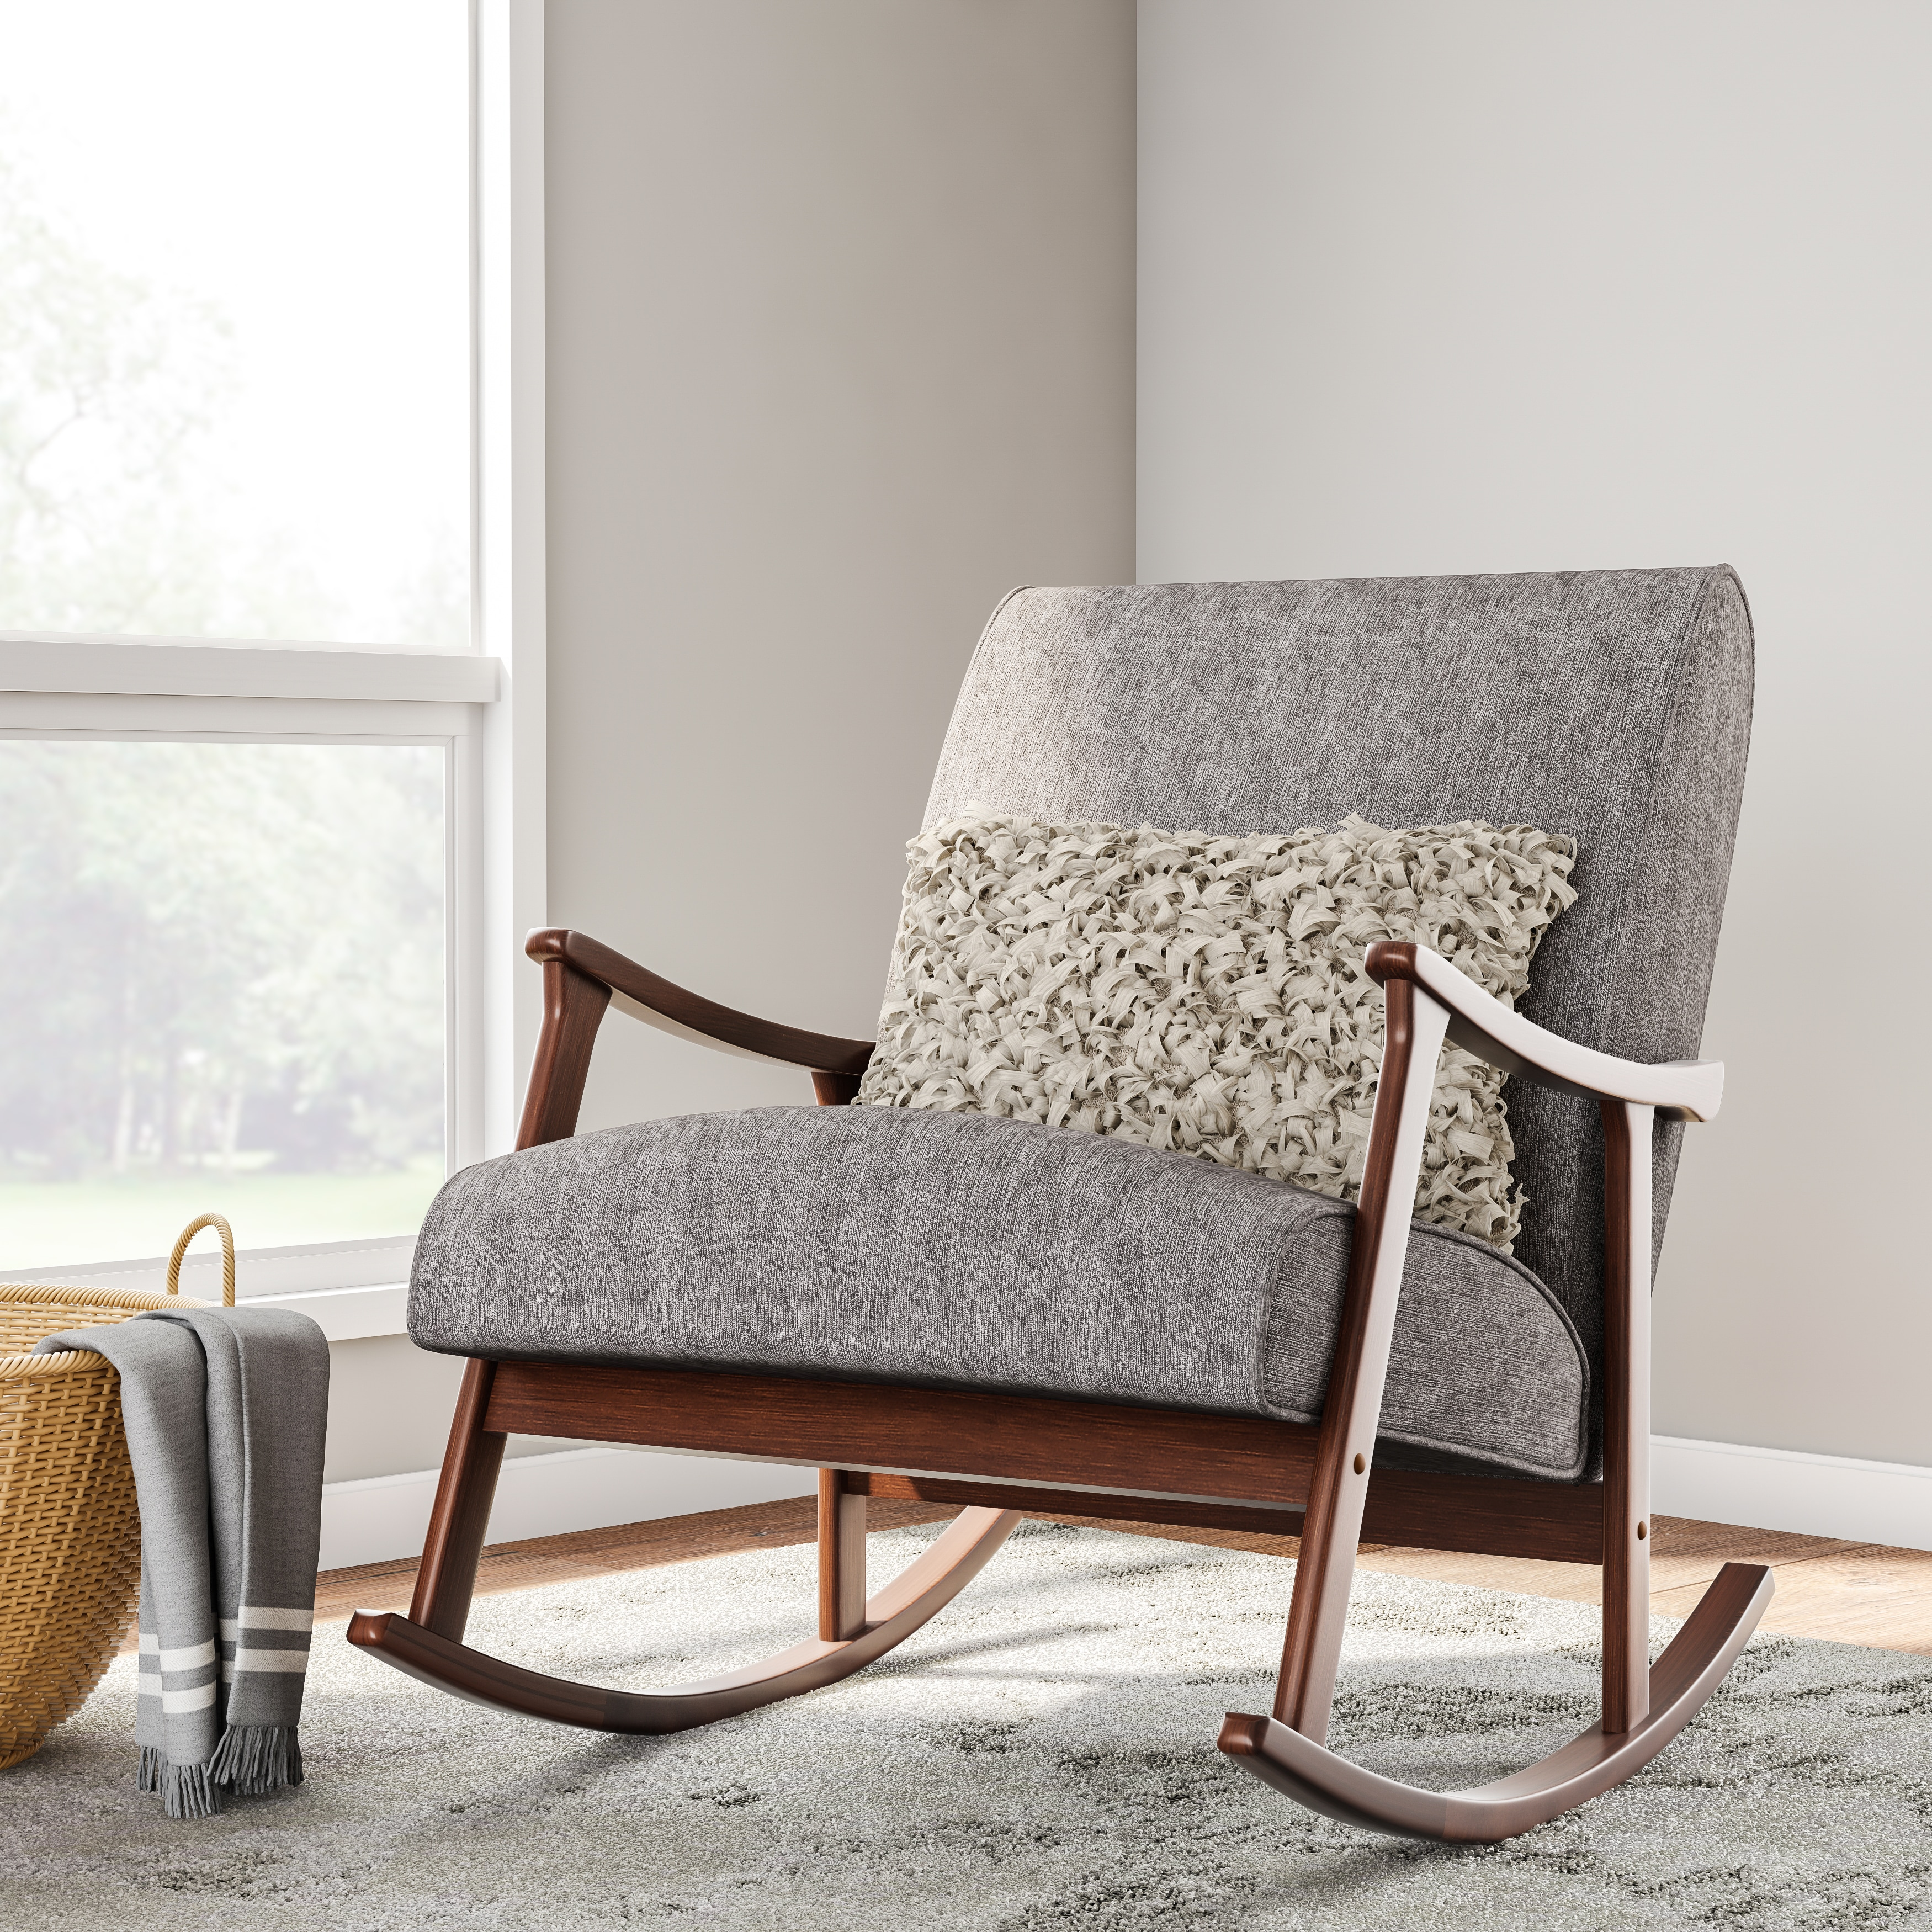 Astonishing Carson Carrington Granite Grey Fabric Mid Century Wooden Rocking Chair Gmtry Best Dining Table And Chair Ideas Images Gmtryco